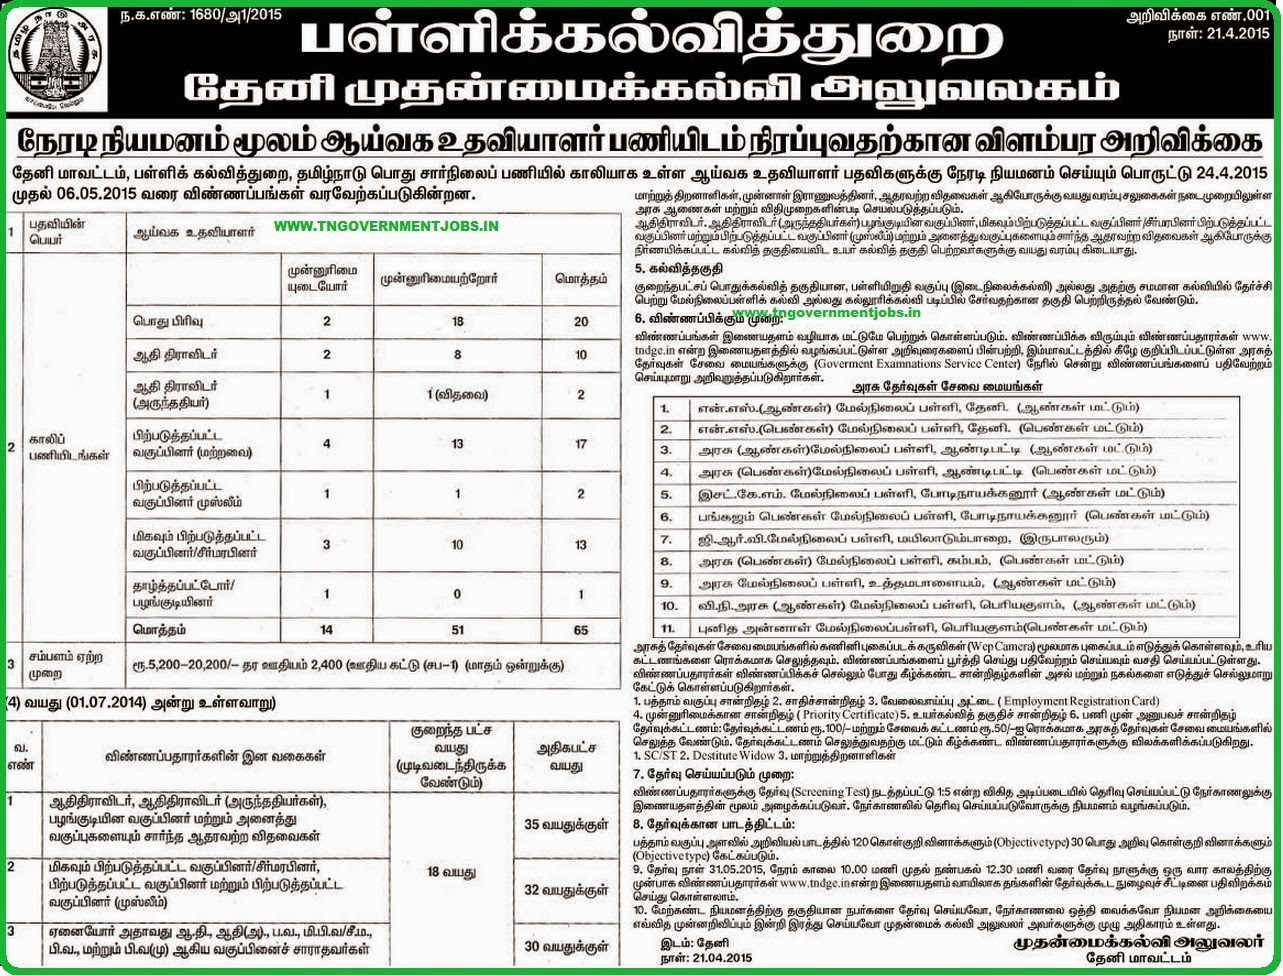 Theni CEO Lab Asst Recruitments 2015 (www.tngovernmentjobs.in)